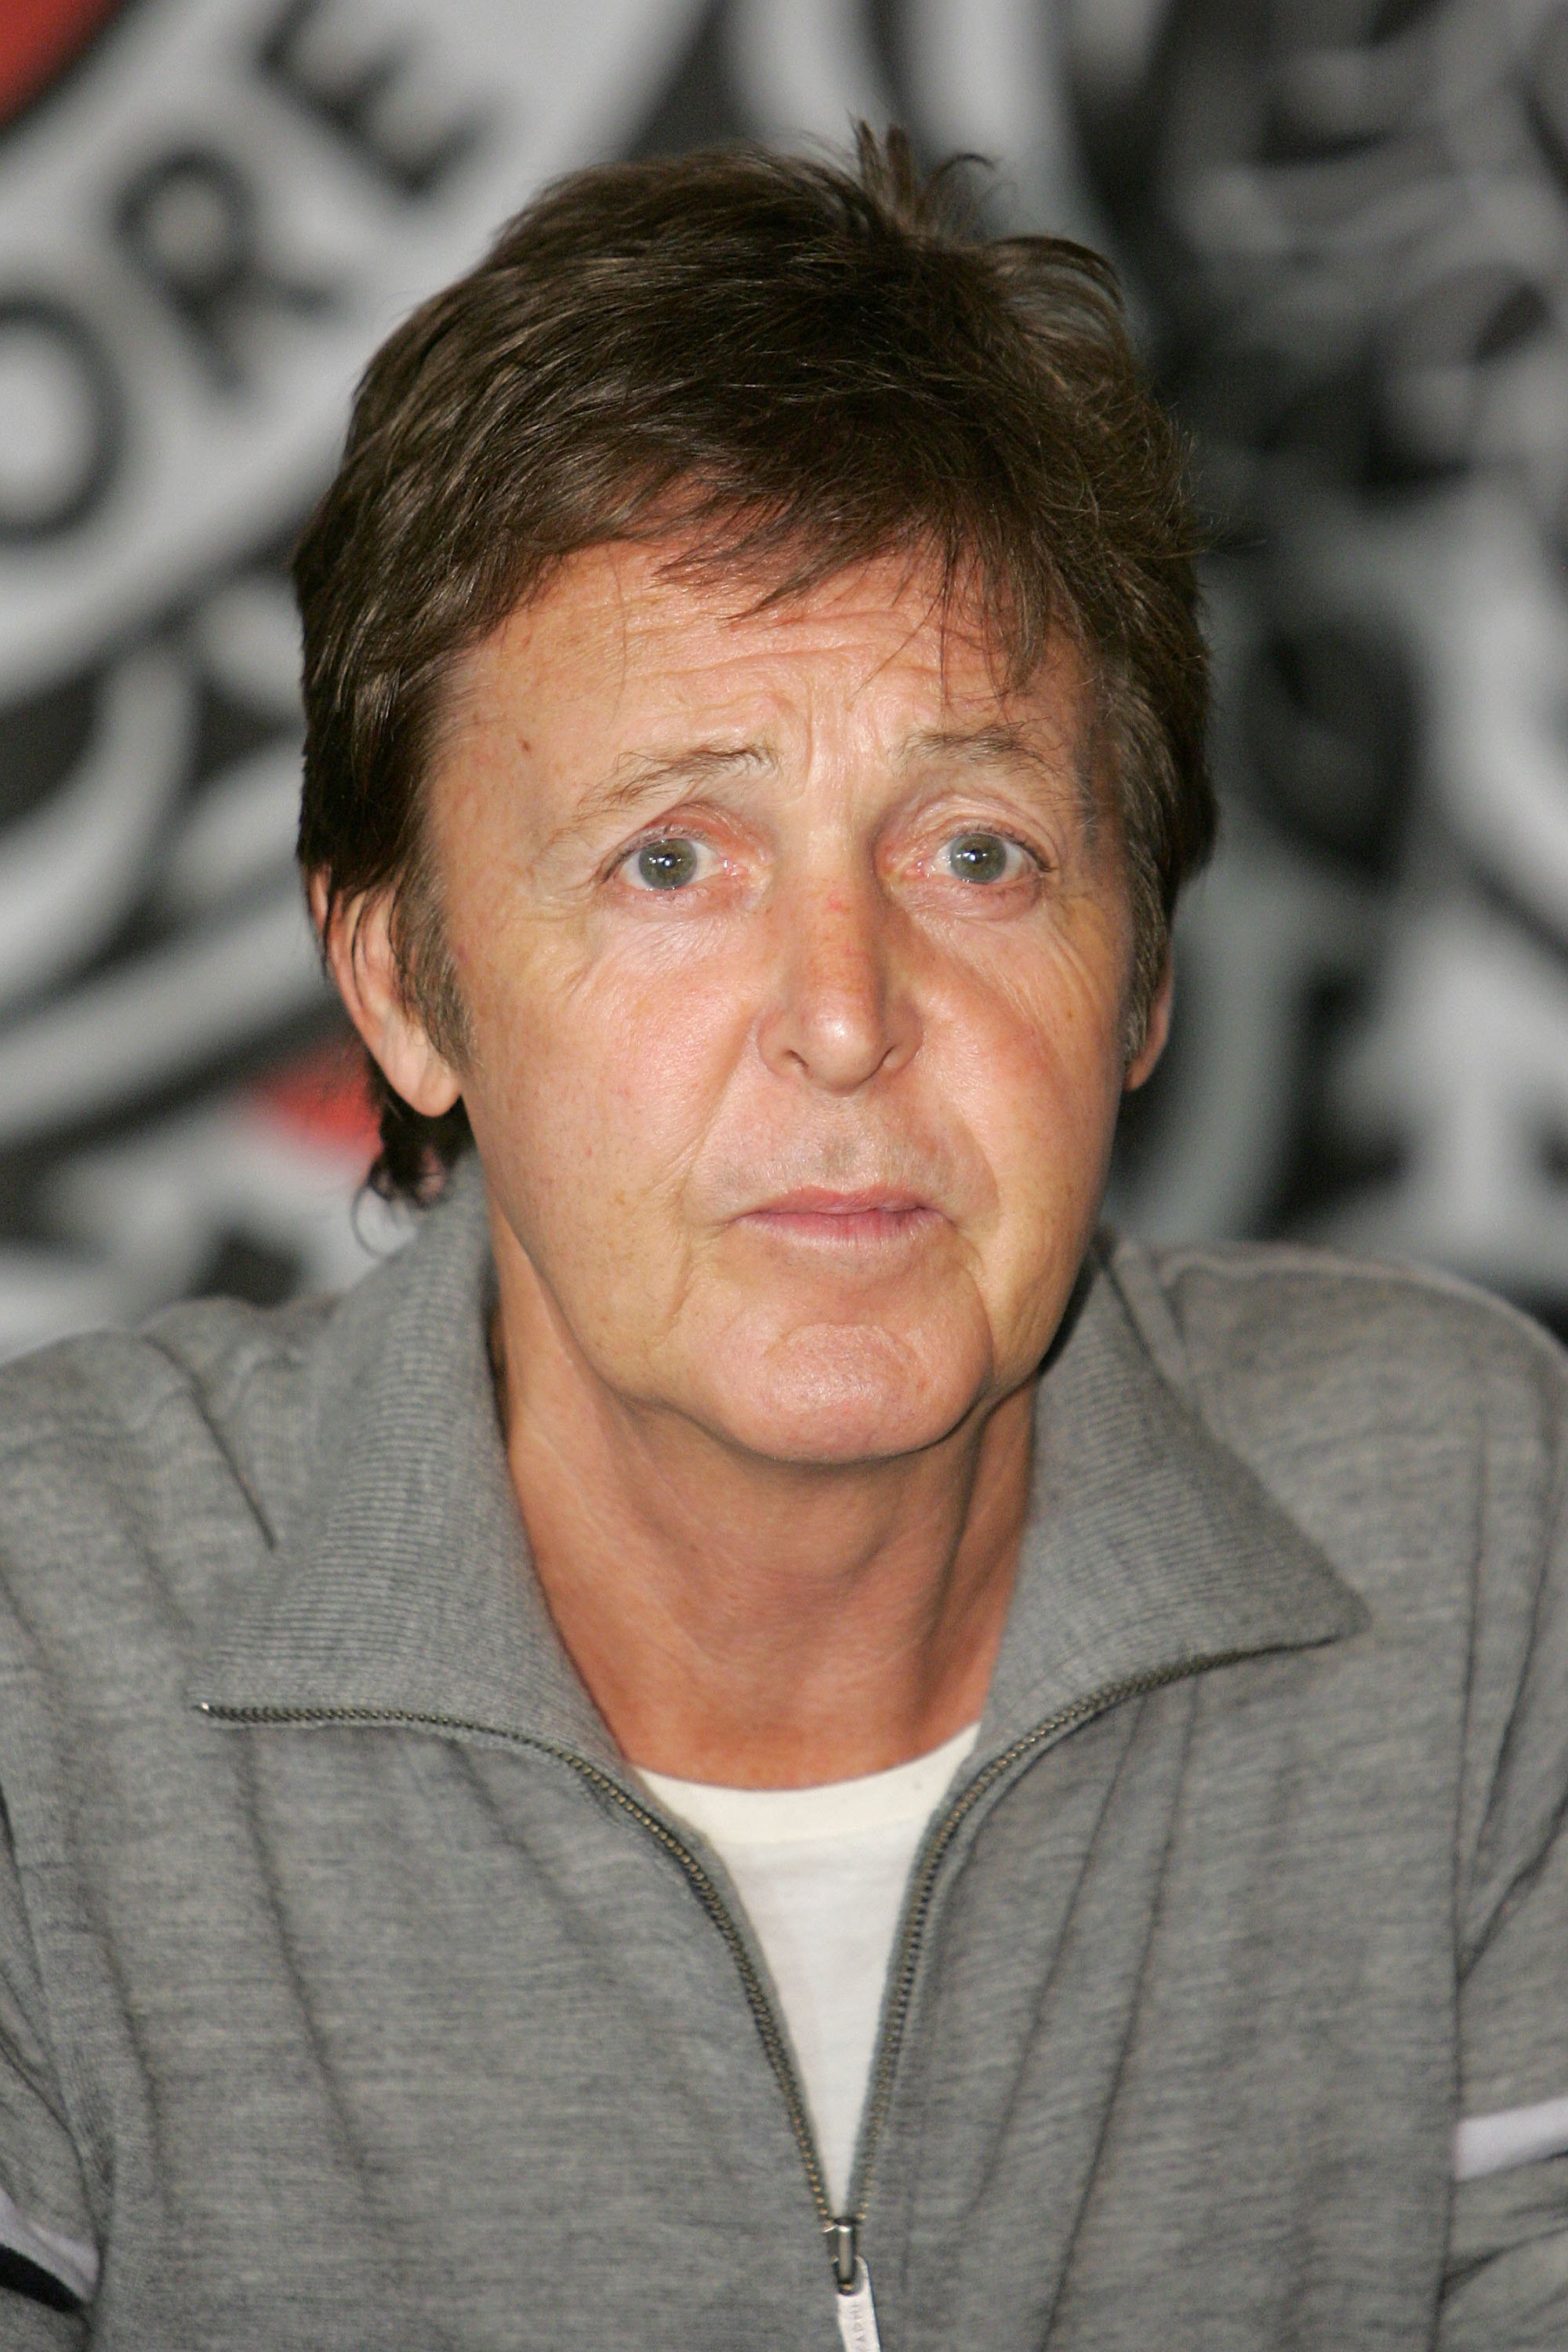 Sir Paul McCartney's career spans more than five decades. Image credit: Getty/GlobalImagesUkraine